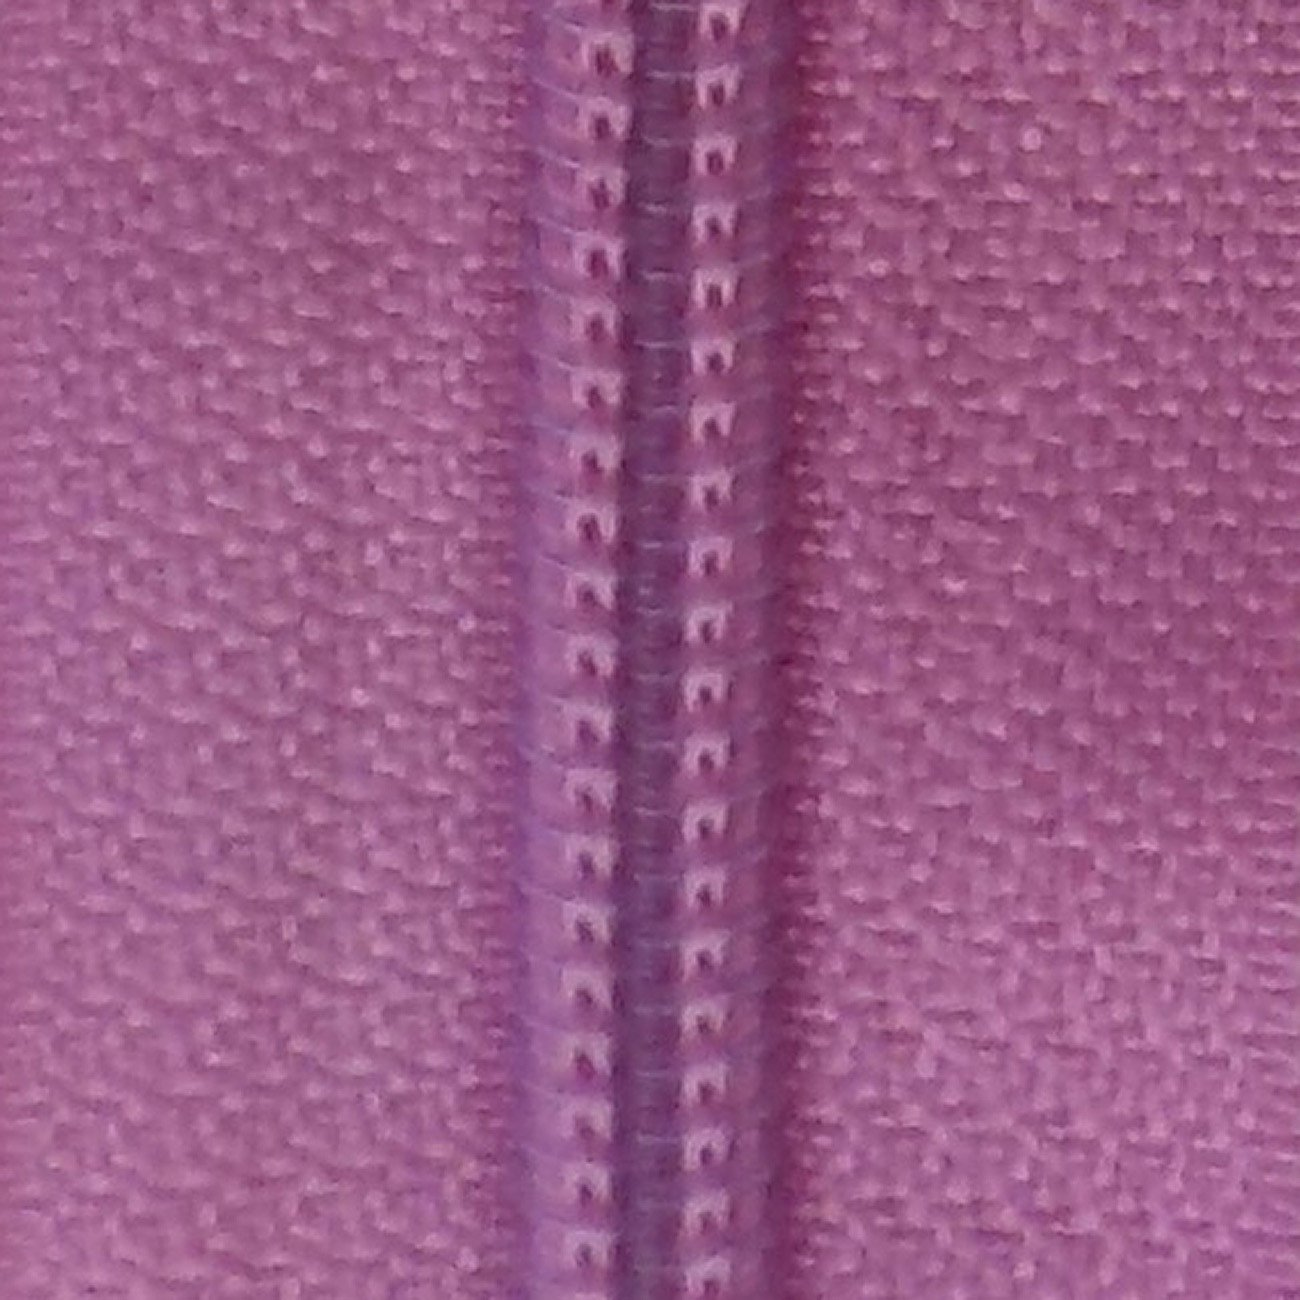 14 Nylon Coil Zipper Cyclamen